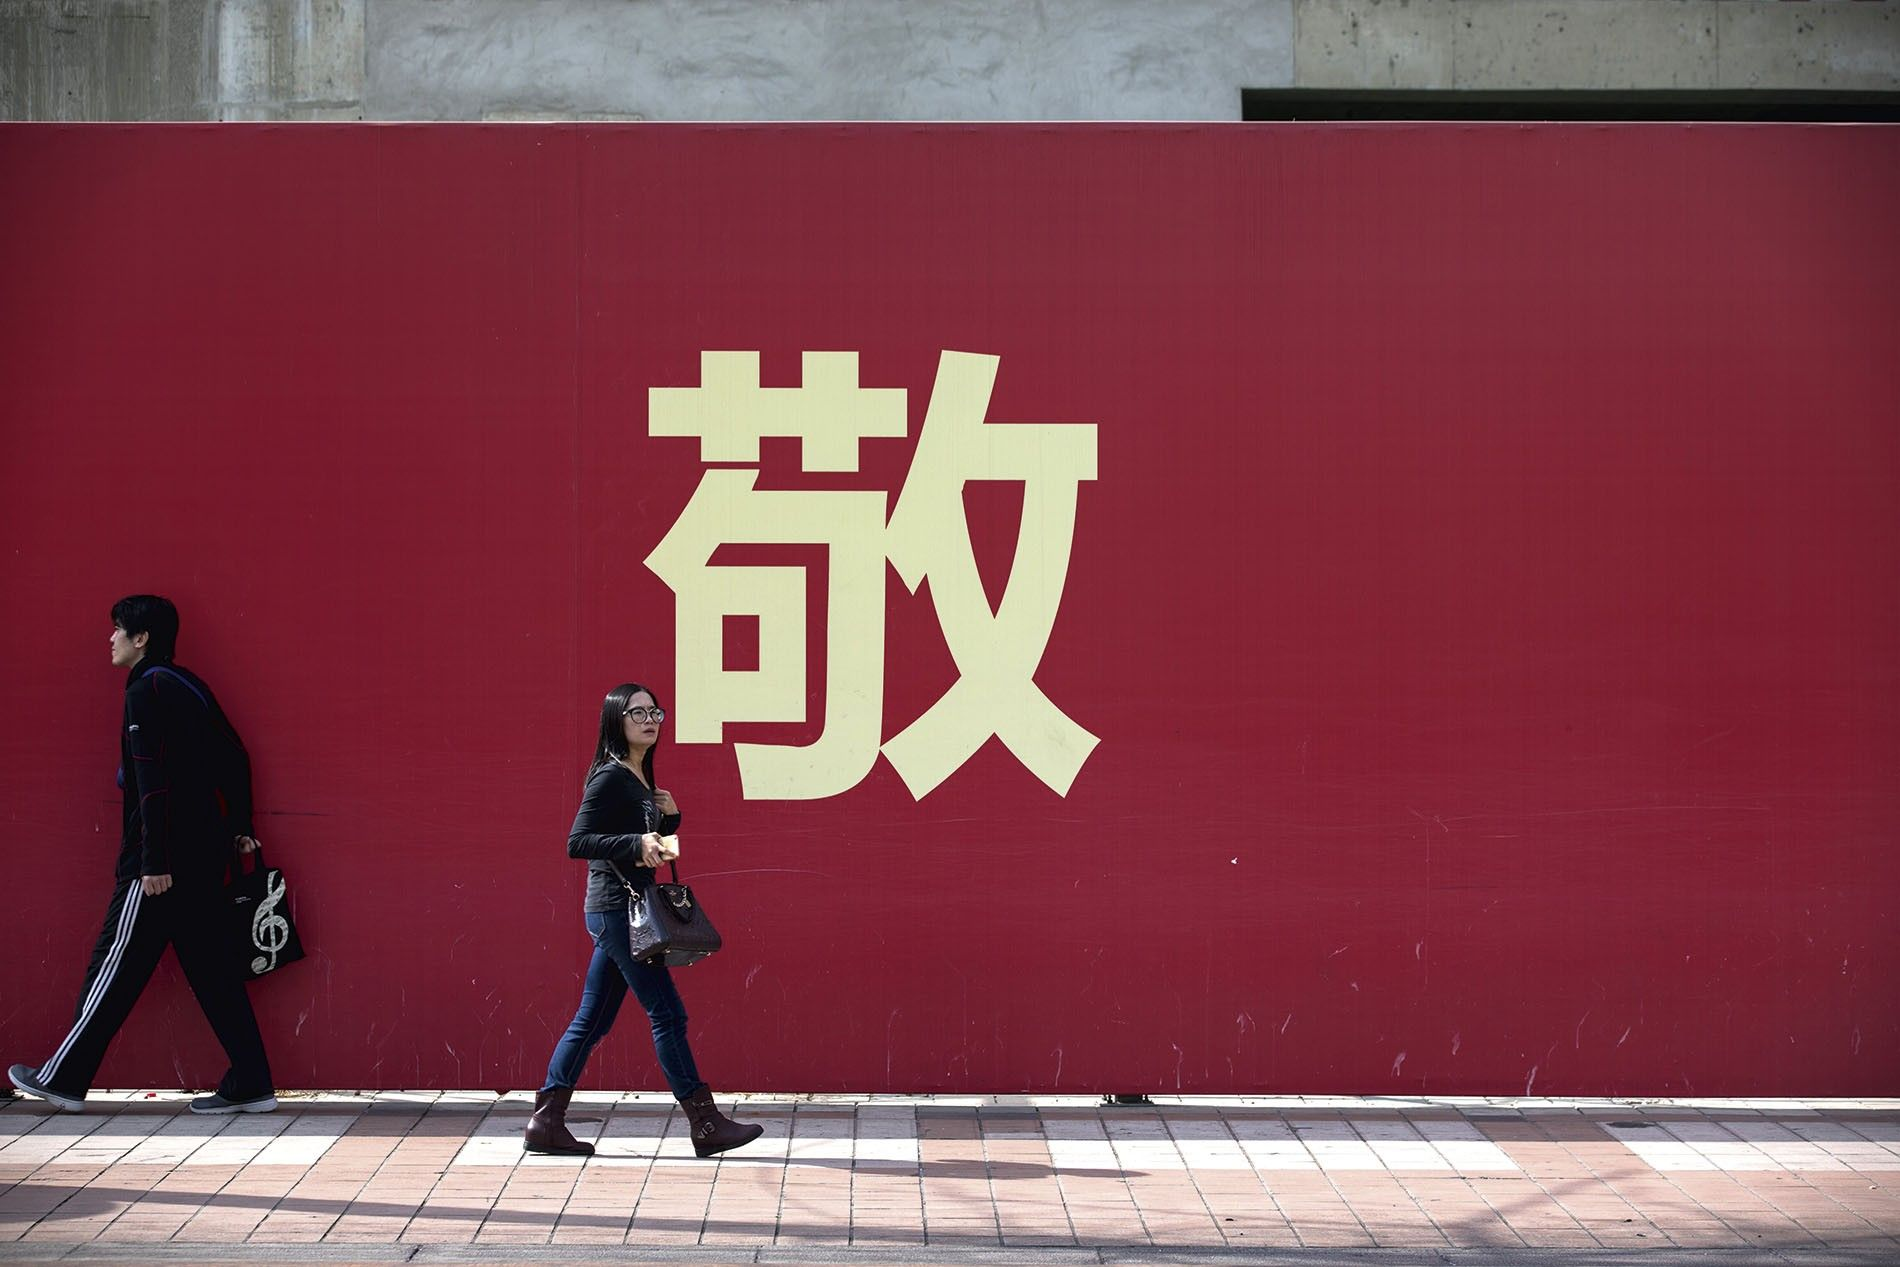 Wall painted with Chinese character 'jing' (symbolising respect, honour), Wangfujing